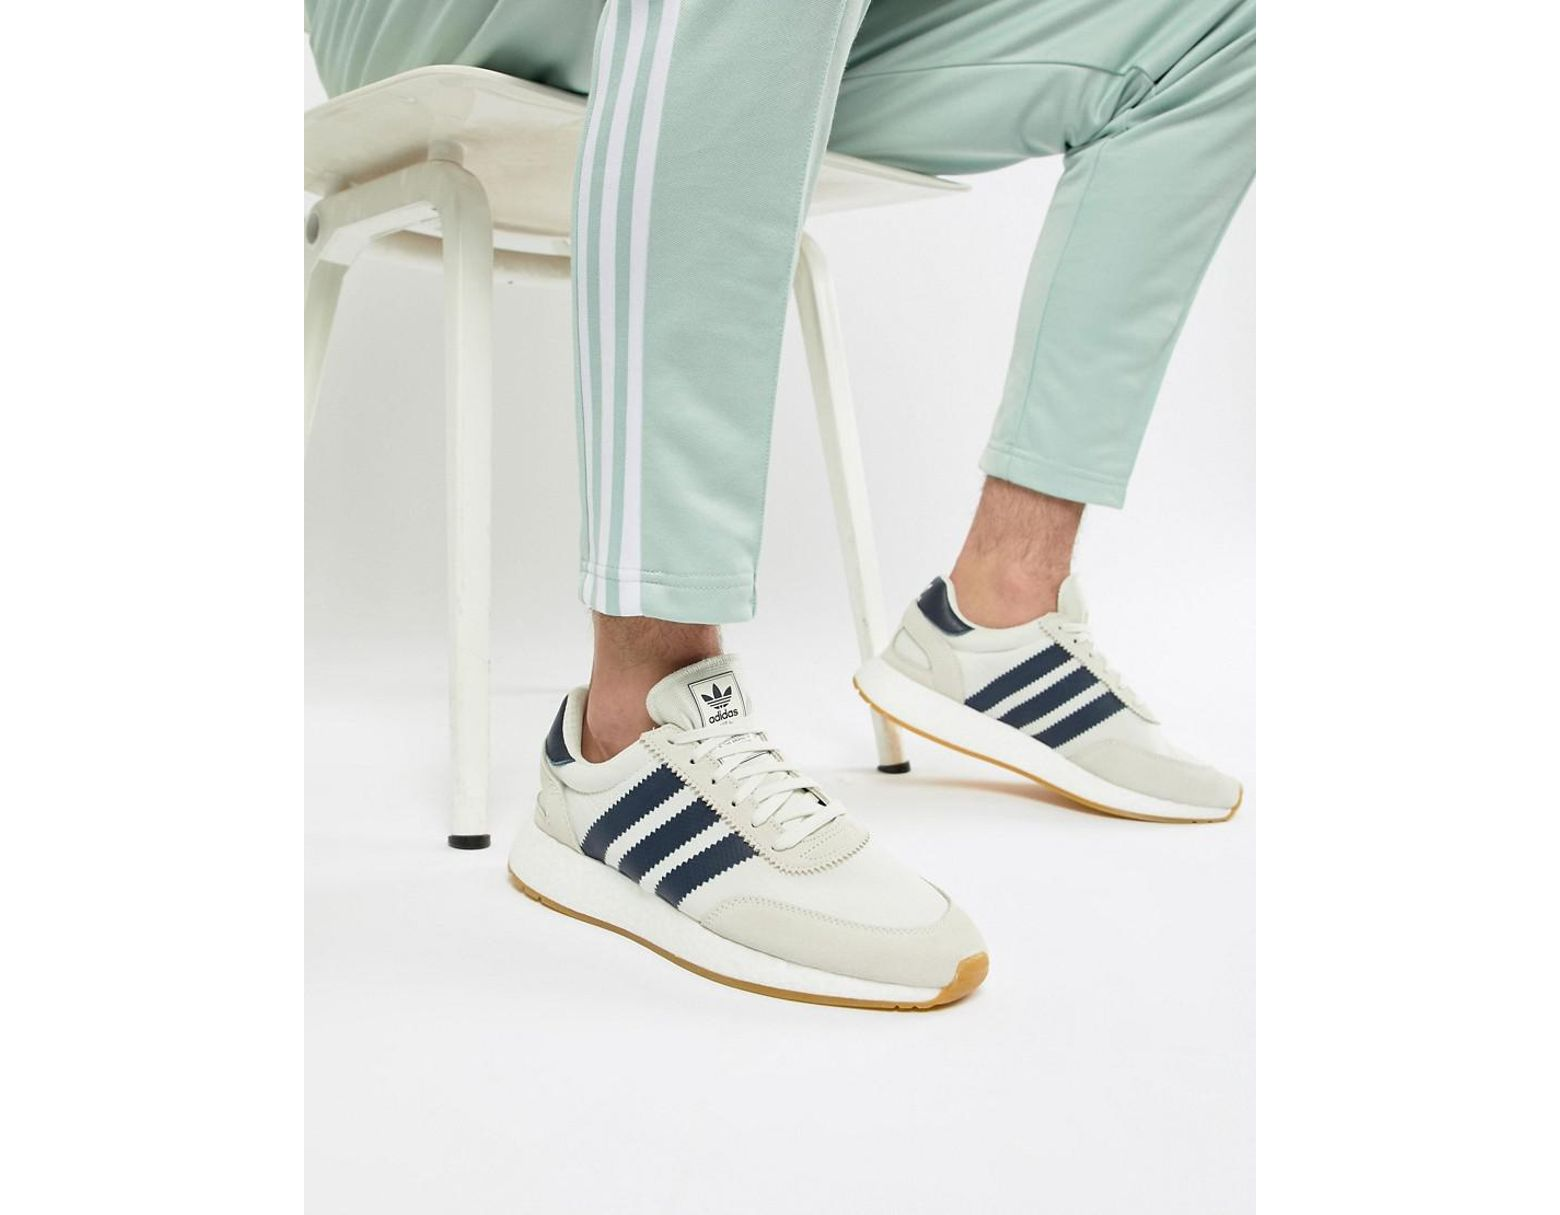 online store 8e6c9 1a16f adidas Originals I-5923 Boost Suede Sneakers In White B37947 in White for  Men - Lyst